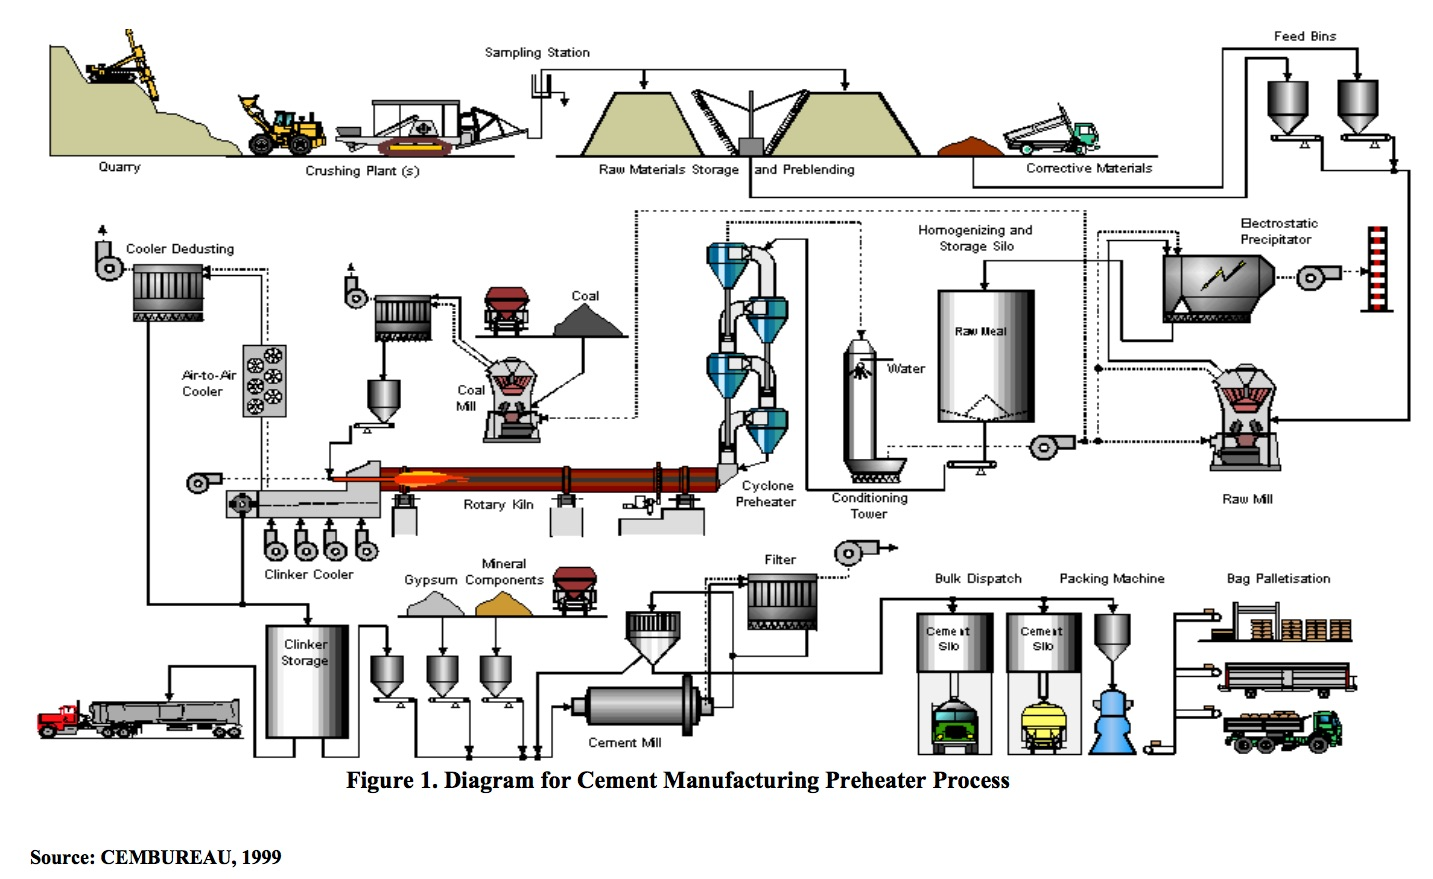 Calcium Aluminate Cement Lafarge : The cement manufacturing process systems